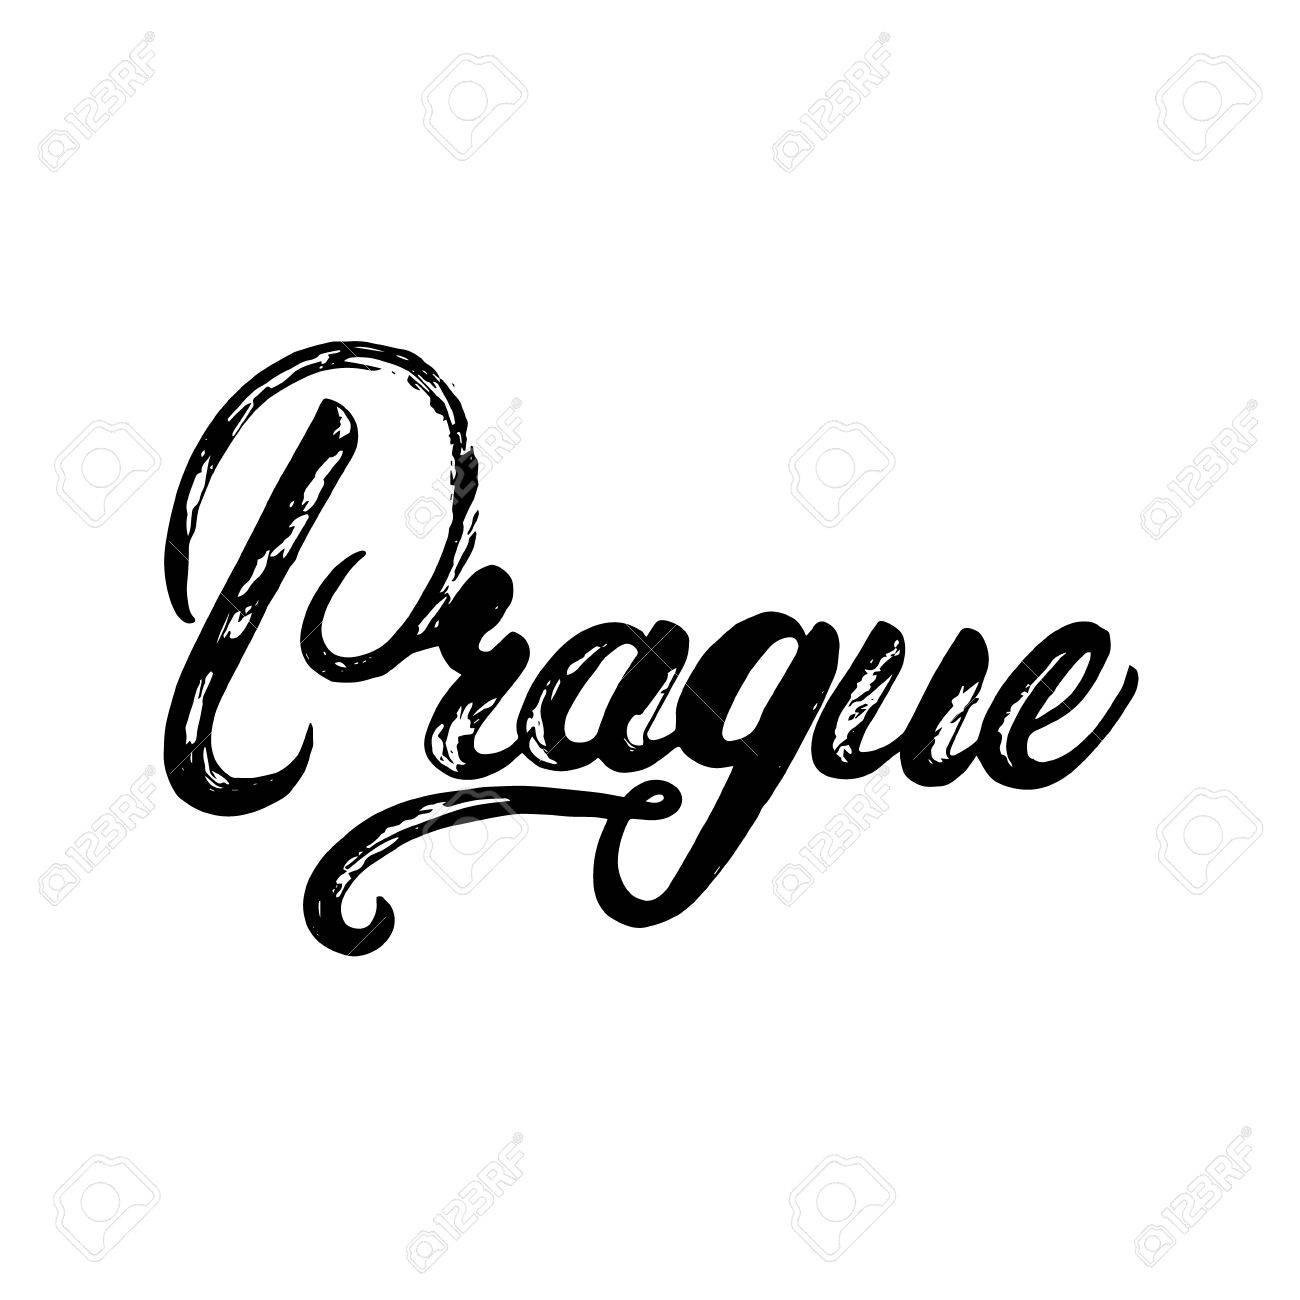 Prague Czech Republic Written Calligraphy Lettering Greeting Card Poster Tee Print With